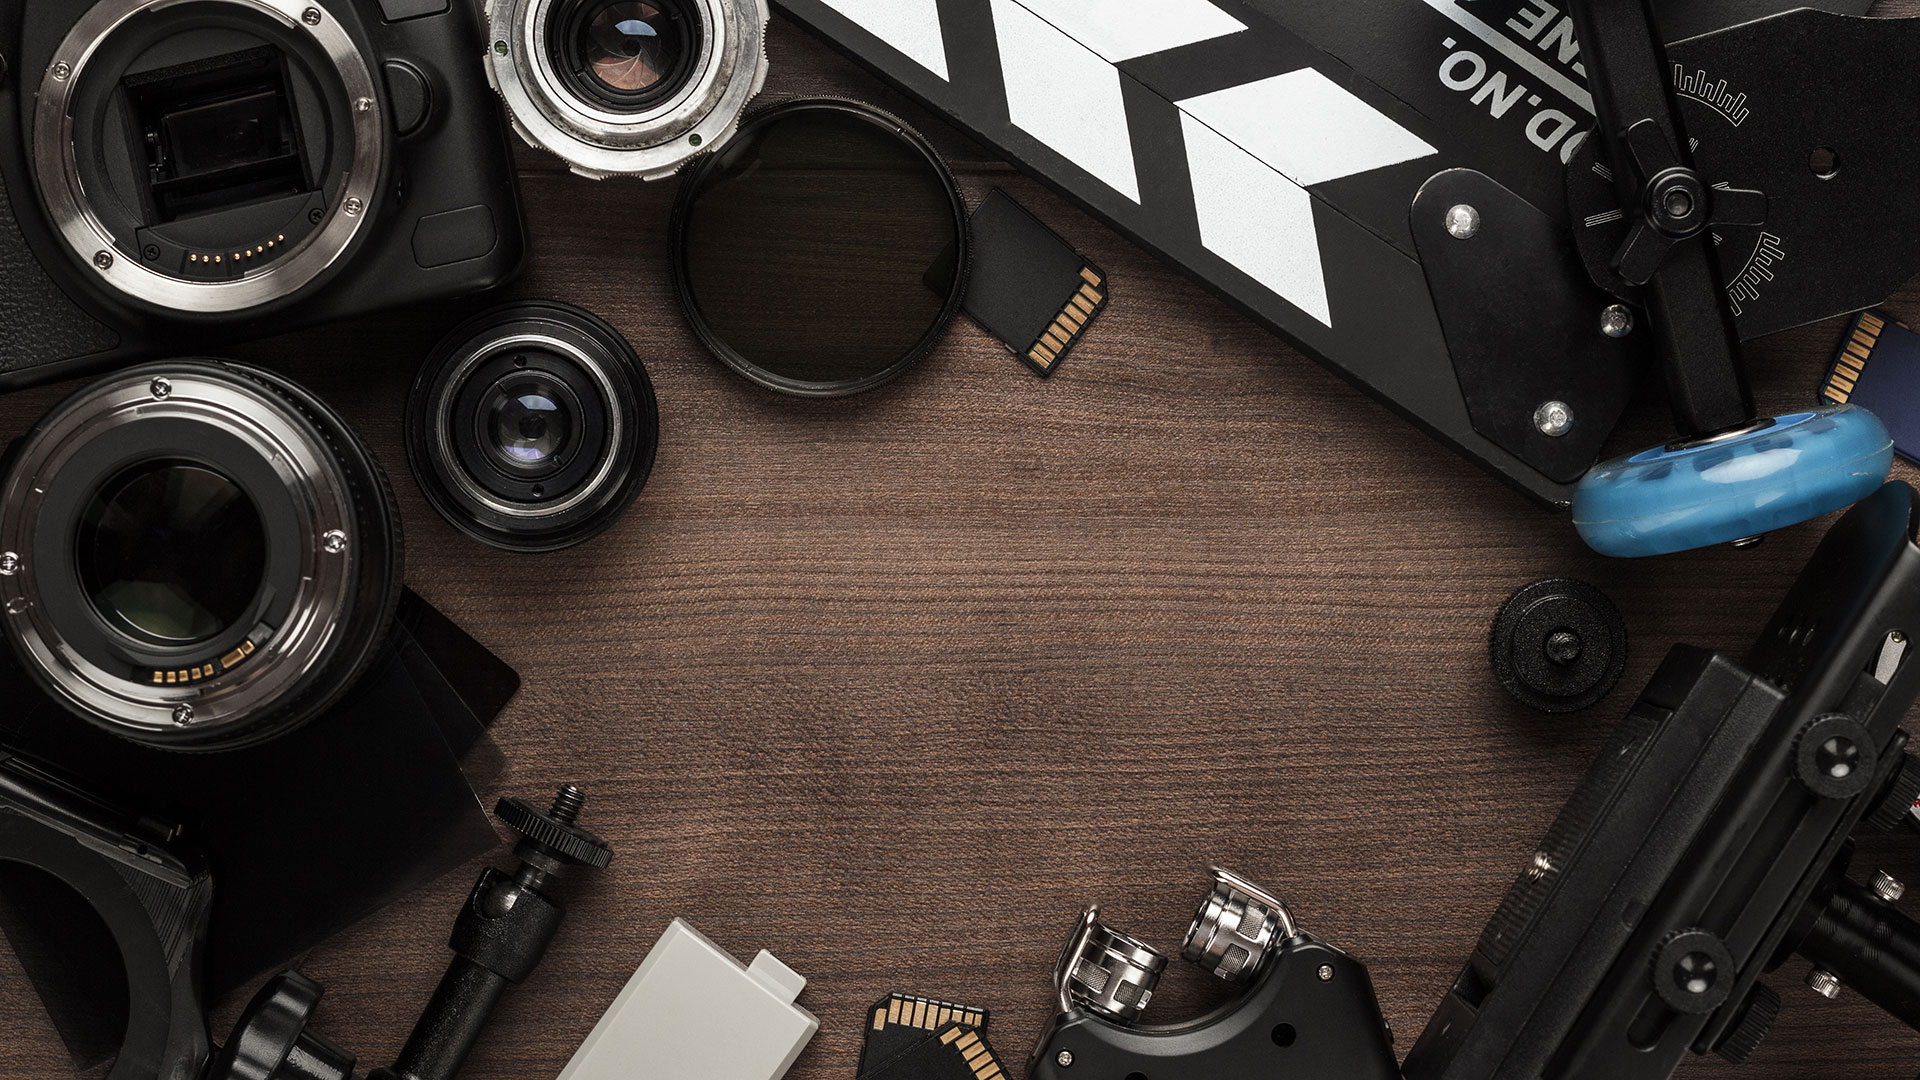 5 Amazing Ways Churches Use Video to Communicate More Effectively